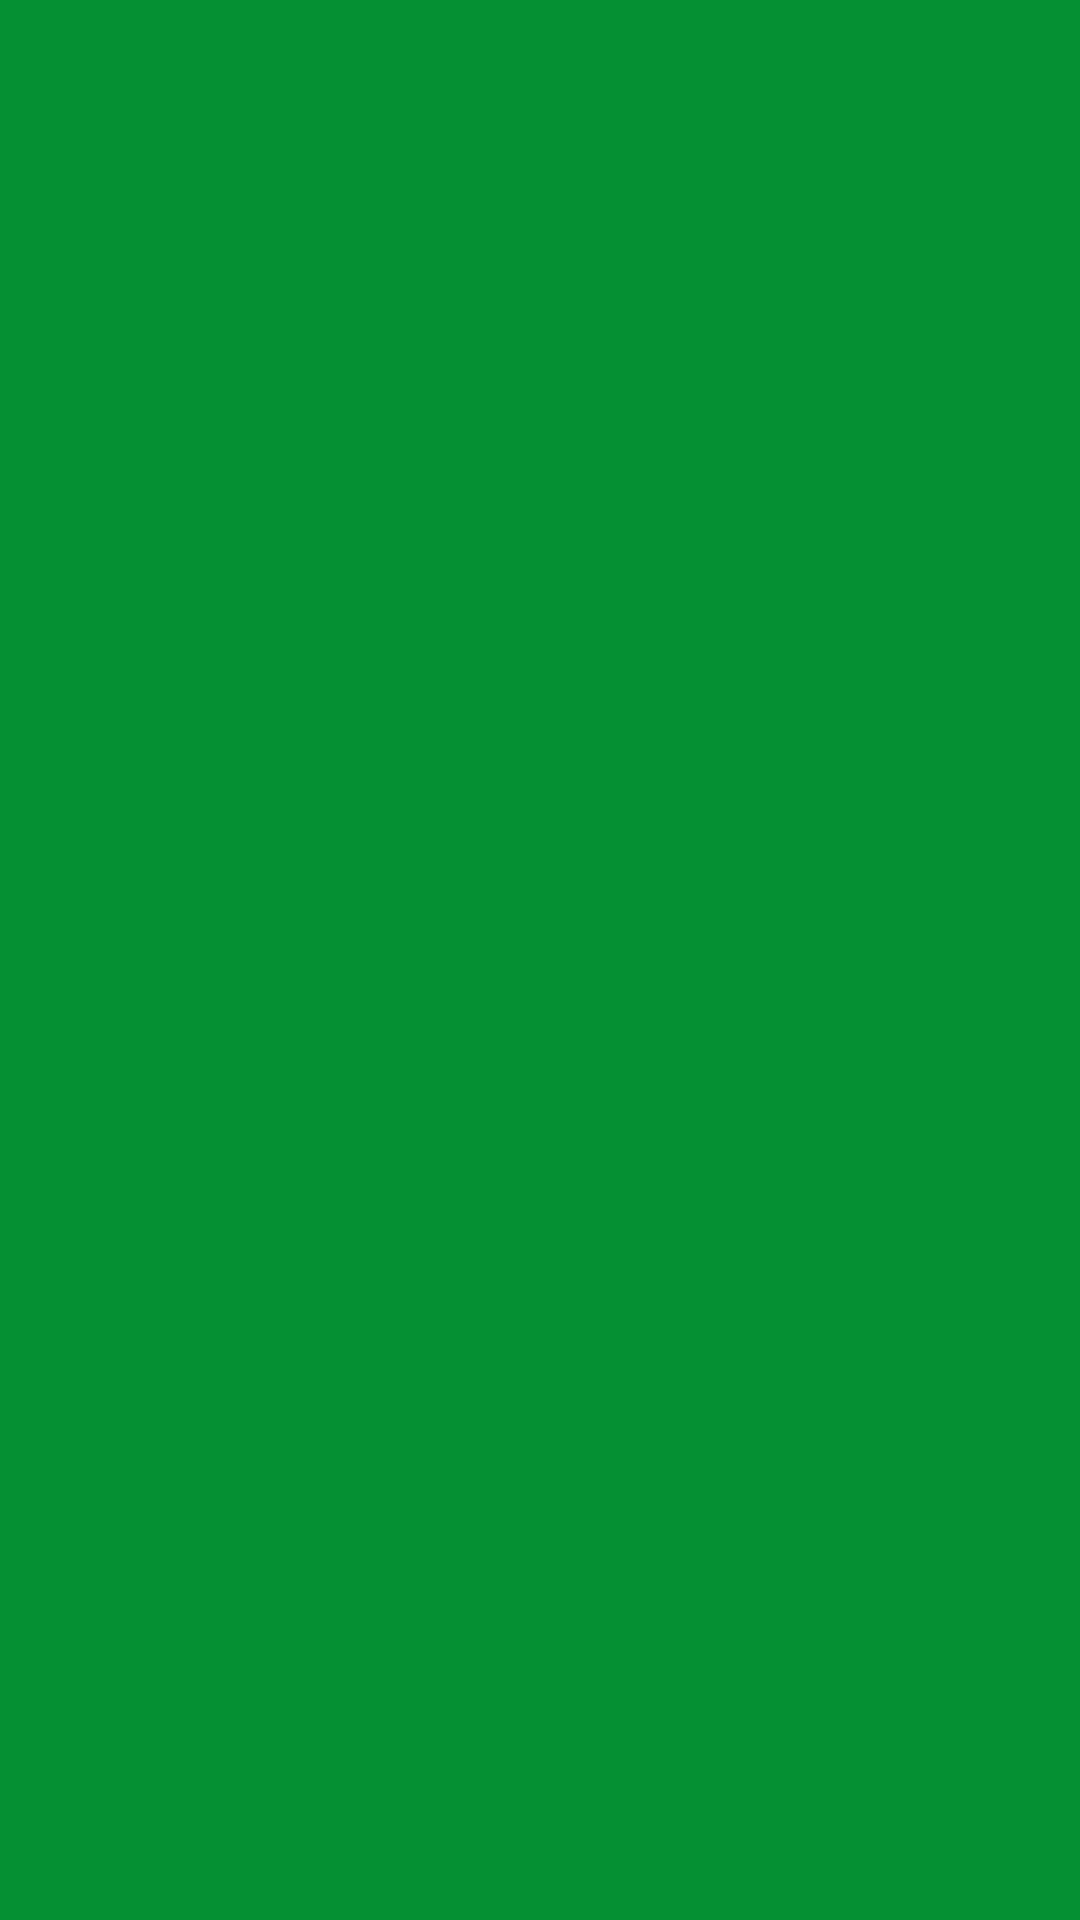 1080x1920 North Texas Green Solid Color Background